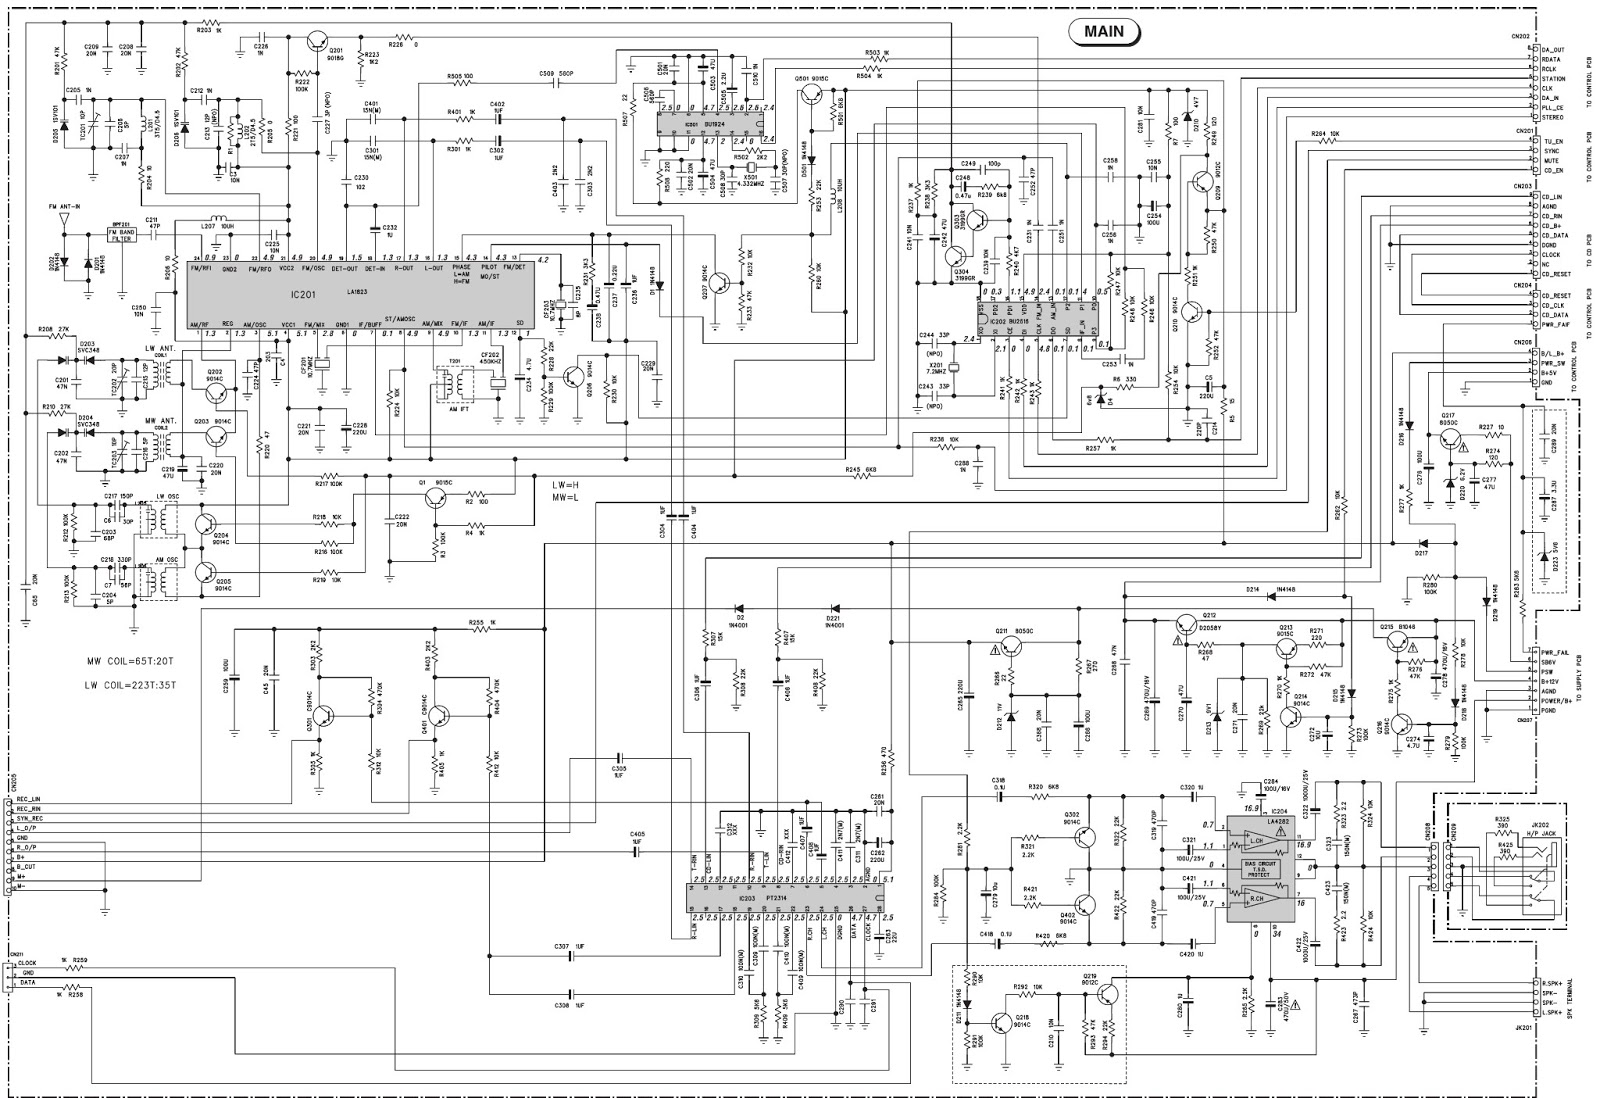 yamaha schematic diagram 24 wiring diagram images yamaha g5 amp schematic yamaha g5 amp schematic [ 1600 x 1098 Pixel ]